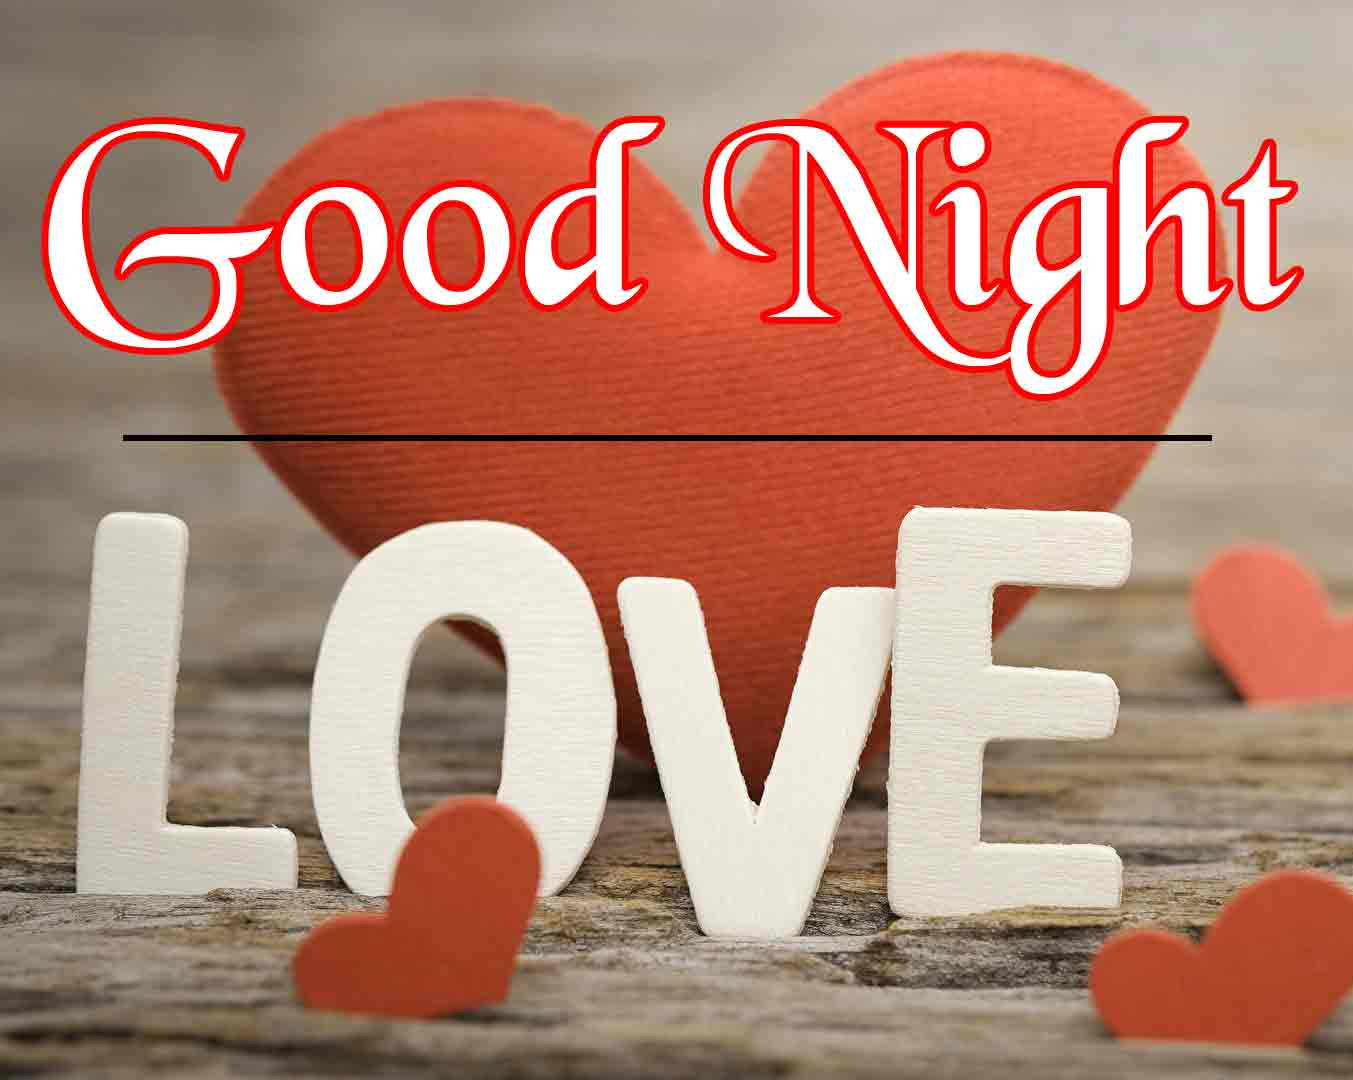 Love Couple Good Night Wallpaper Images Download